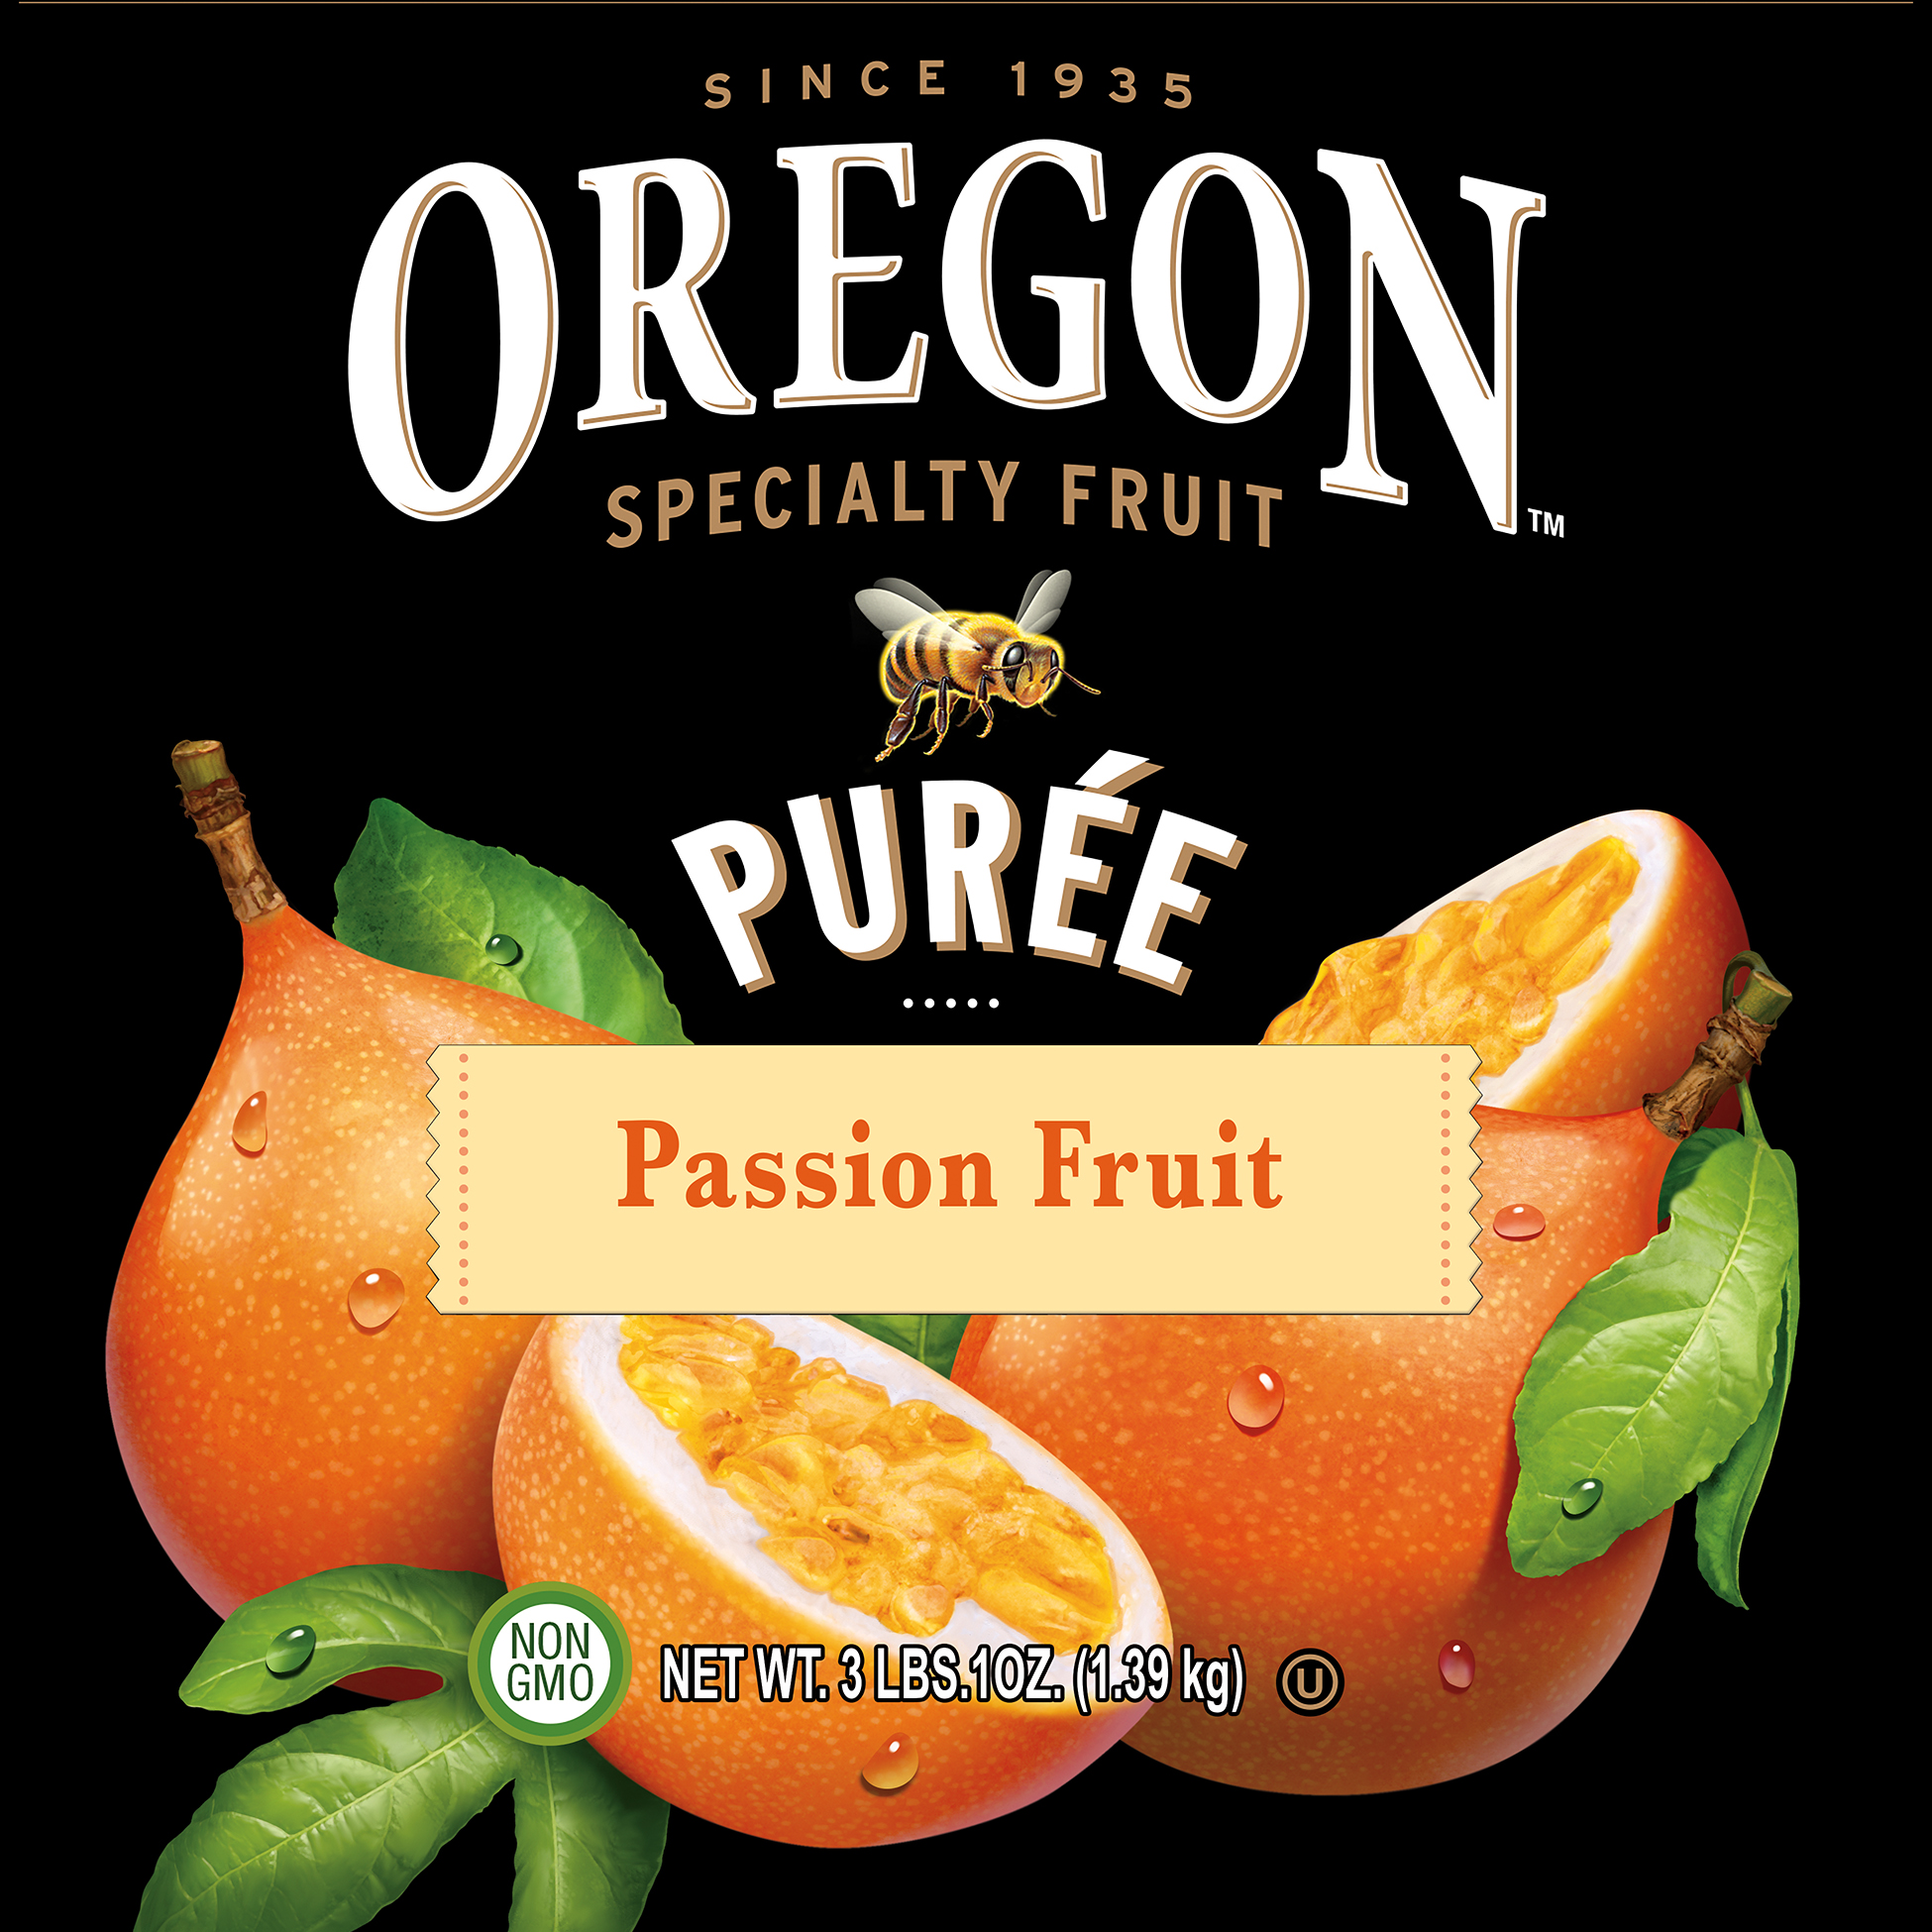 OFP_PUREE Passion Fruit illus 2.0